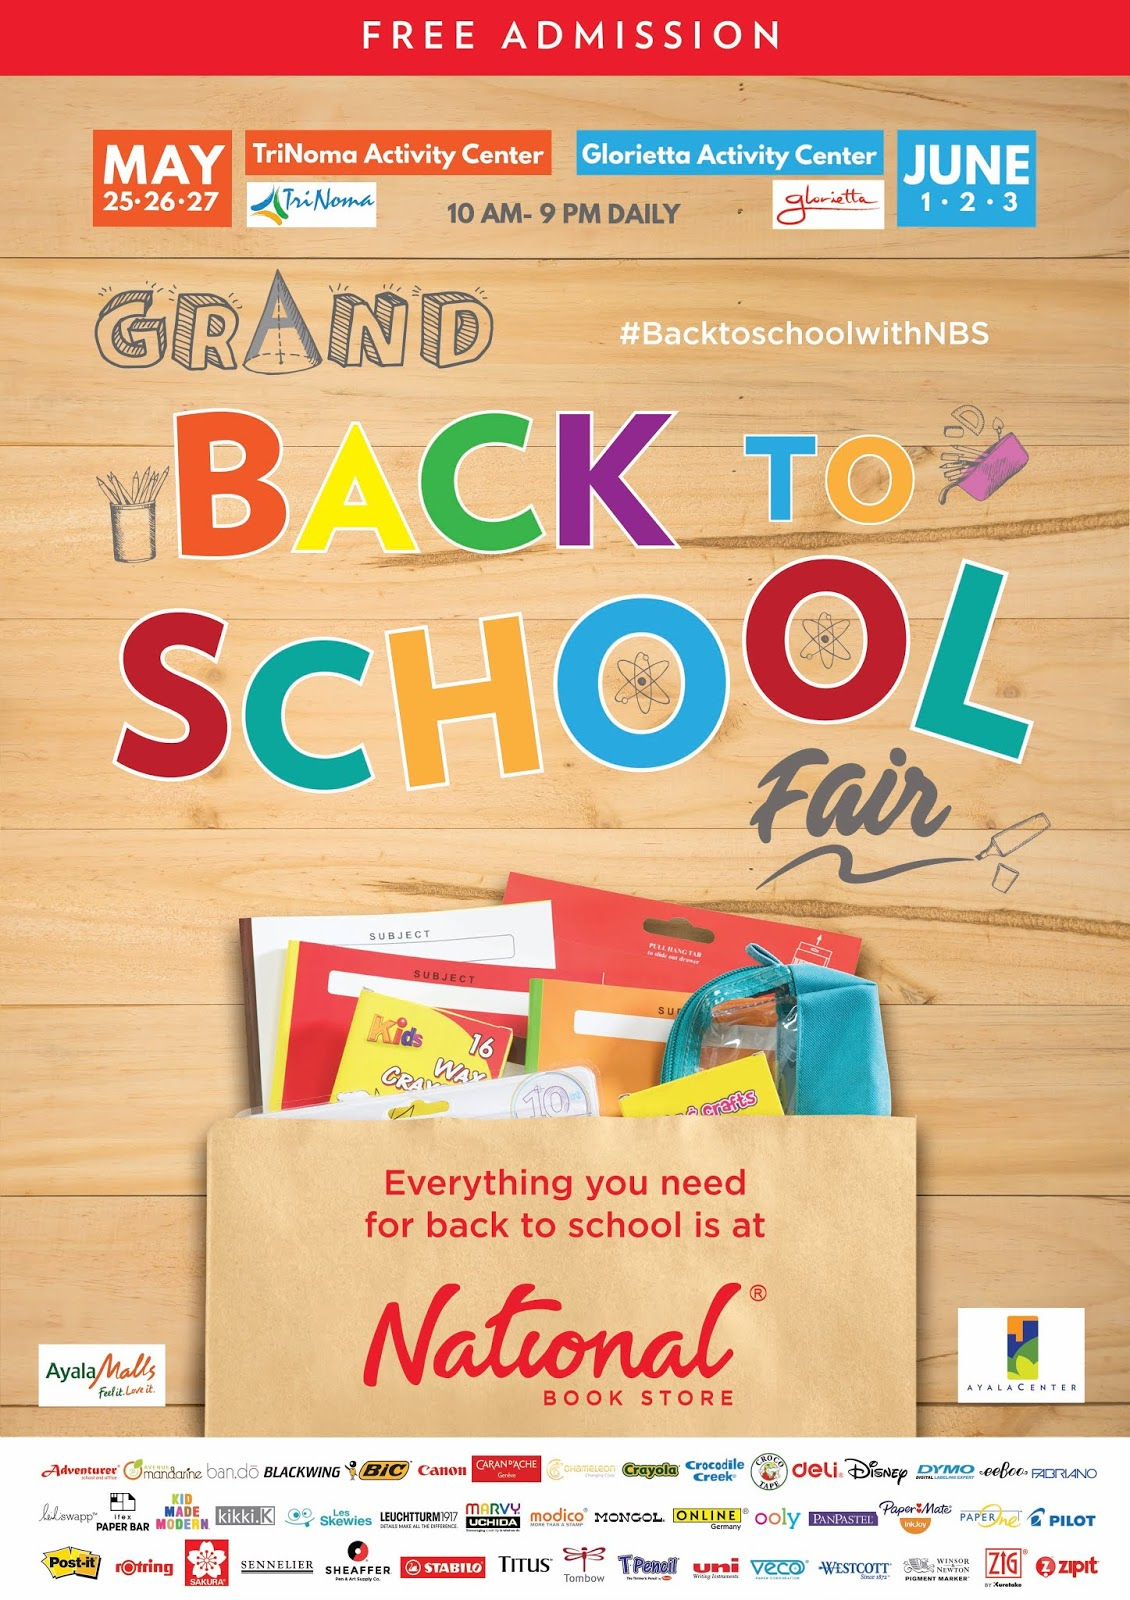 National book stores grand back to school fair national book store invites you to complete your back to school shopping at their grand back to school fair happening from may 25 to 27 stopboris Gallery